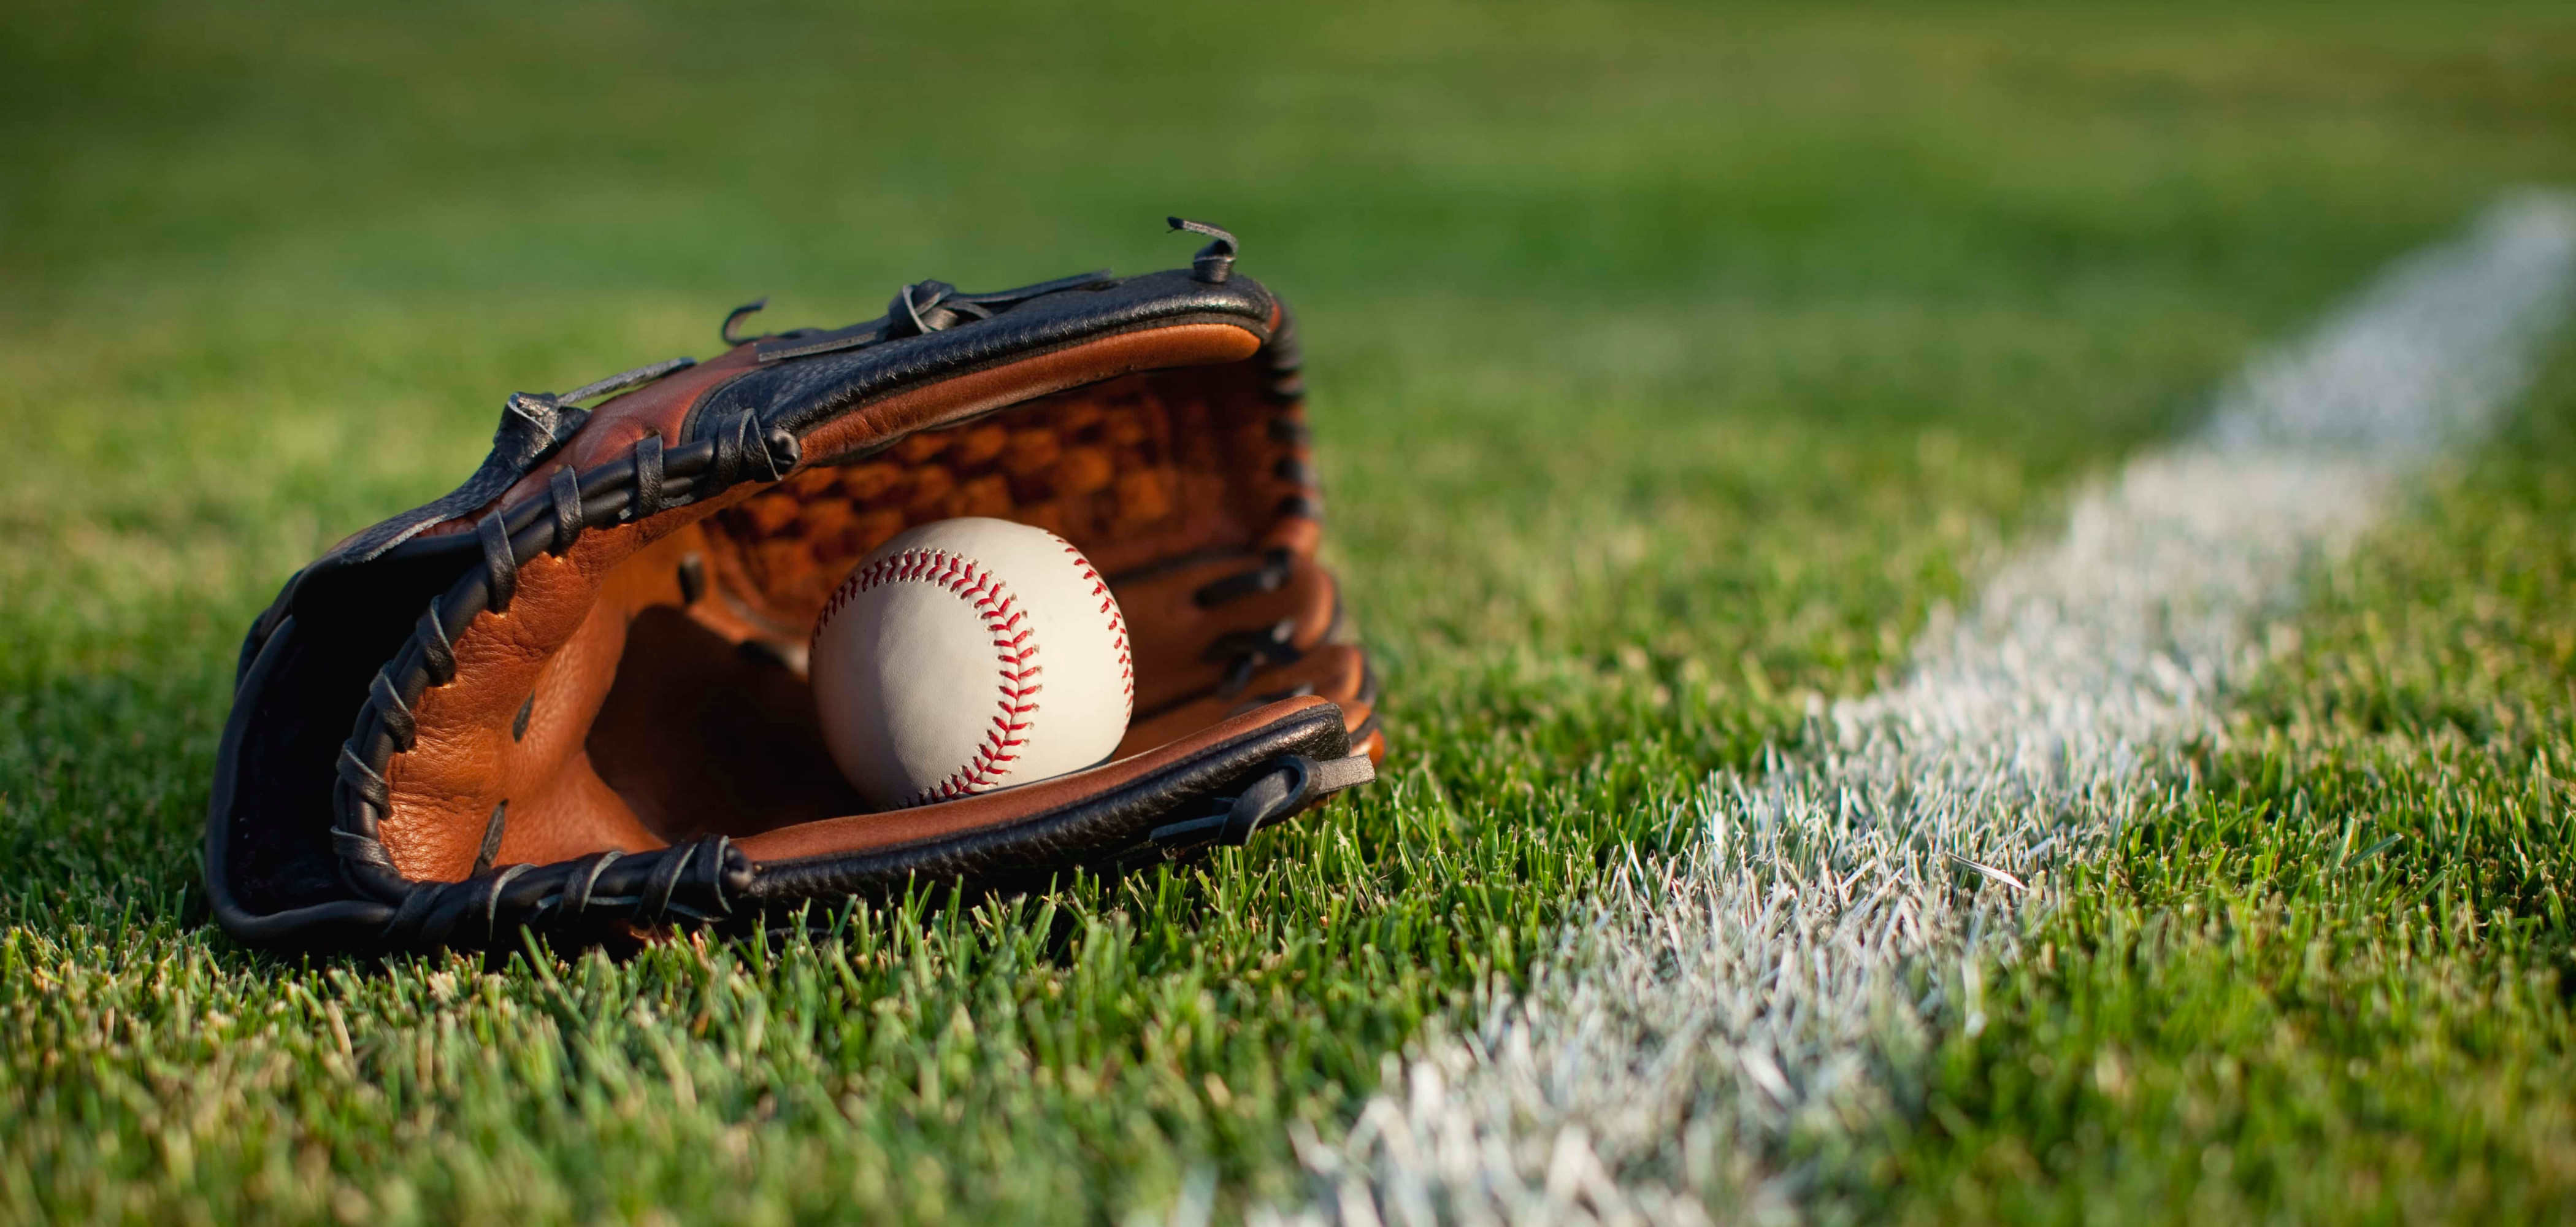 A Baseball Glove on the Field